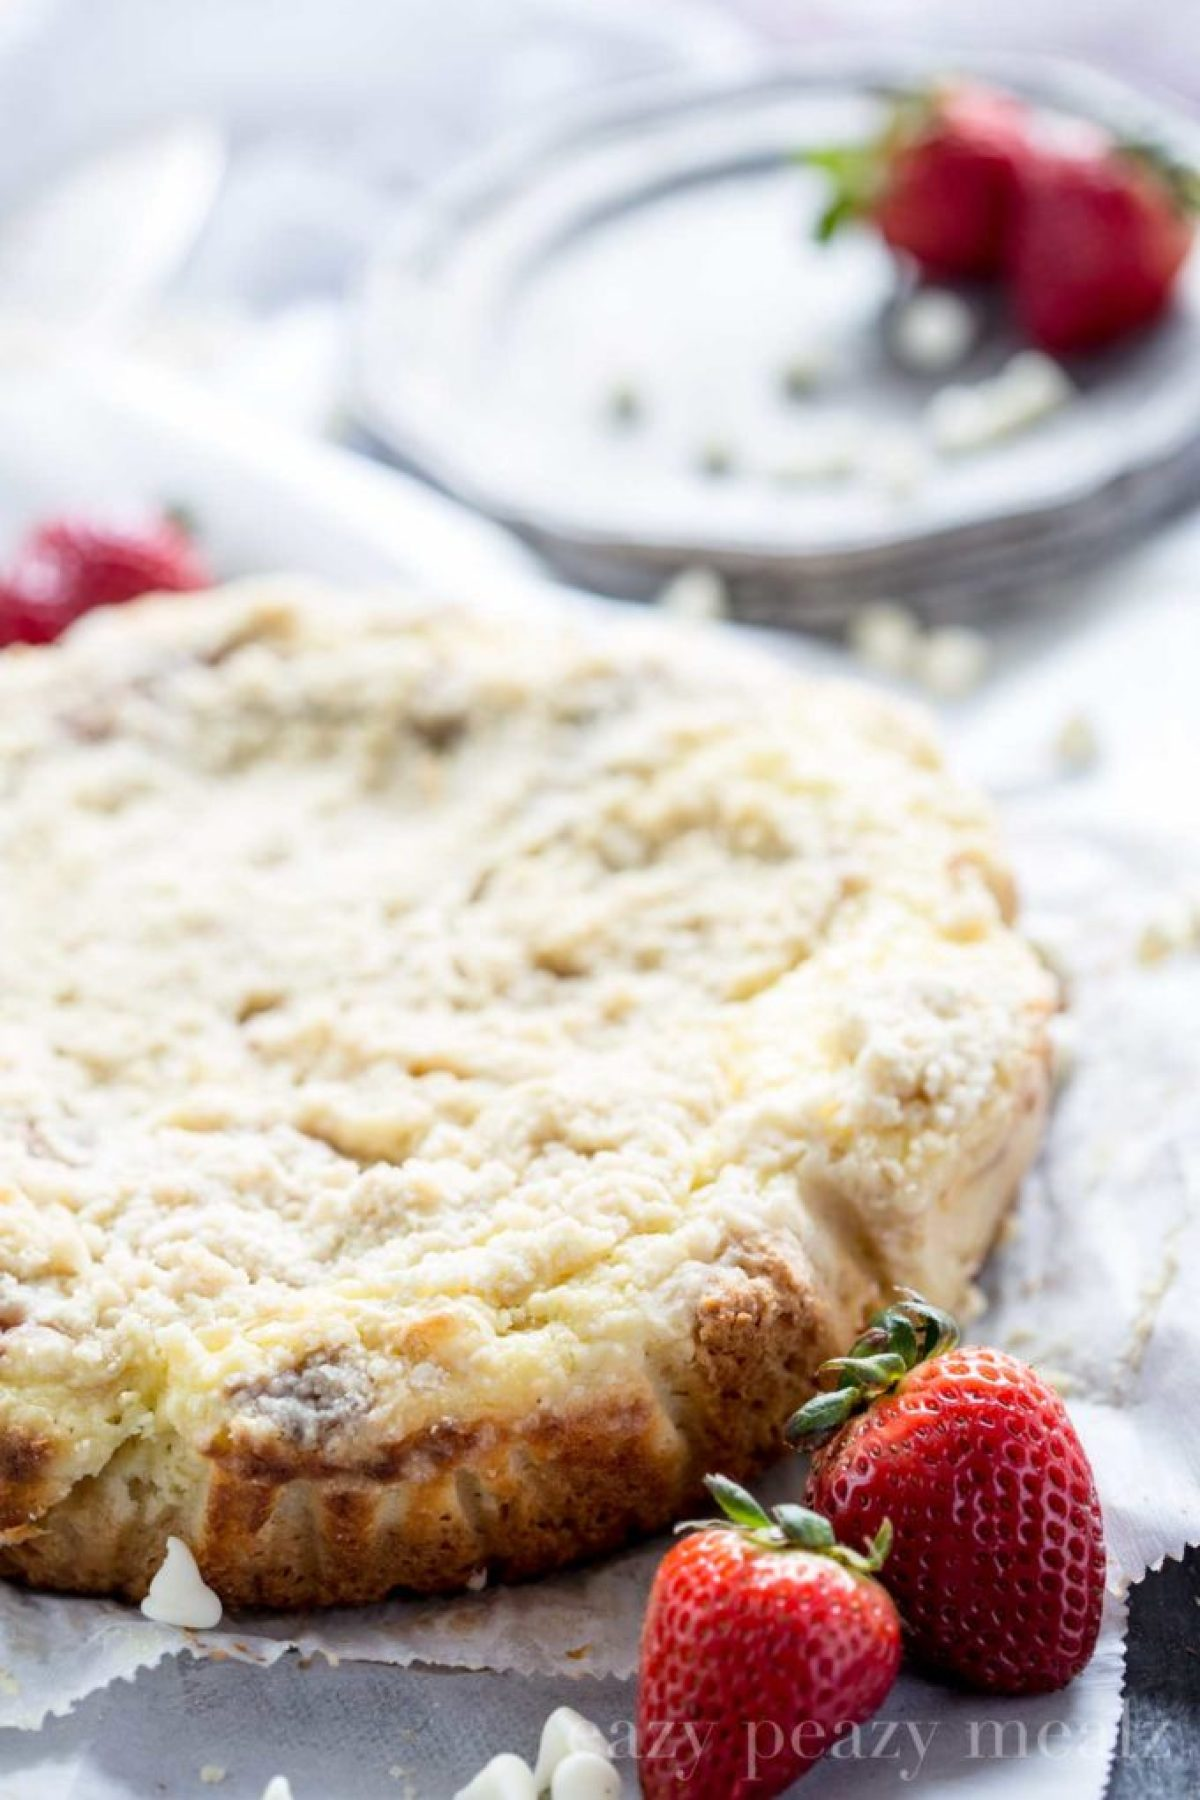 coffee cake, it's delicious for breakfast or dessert